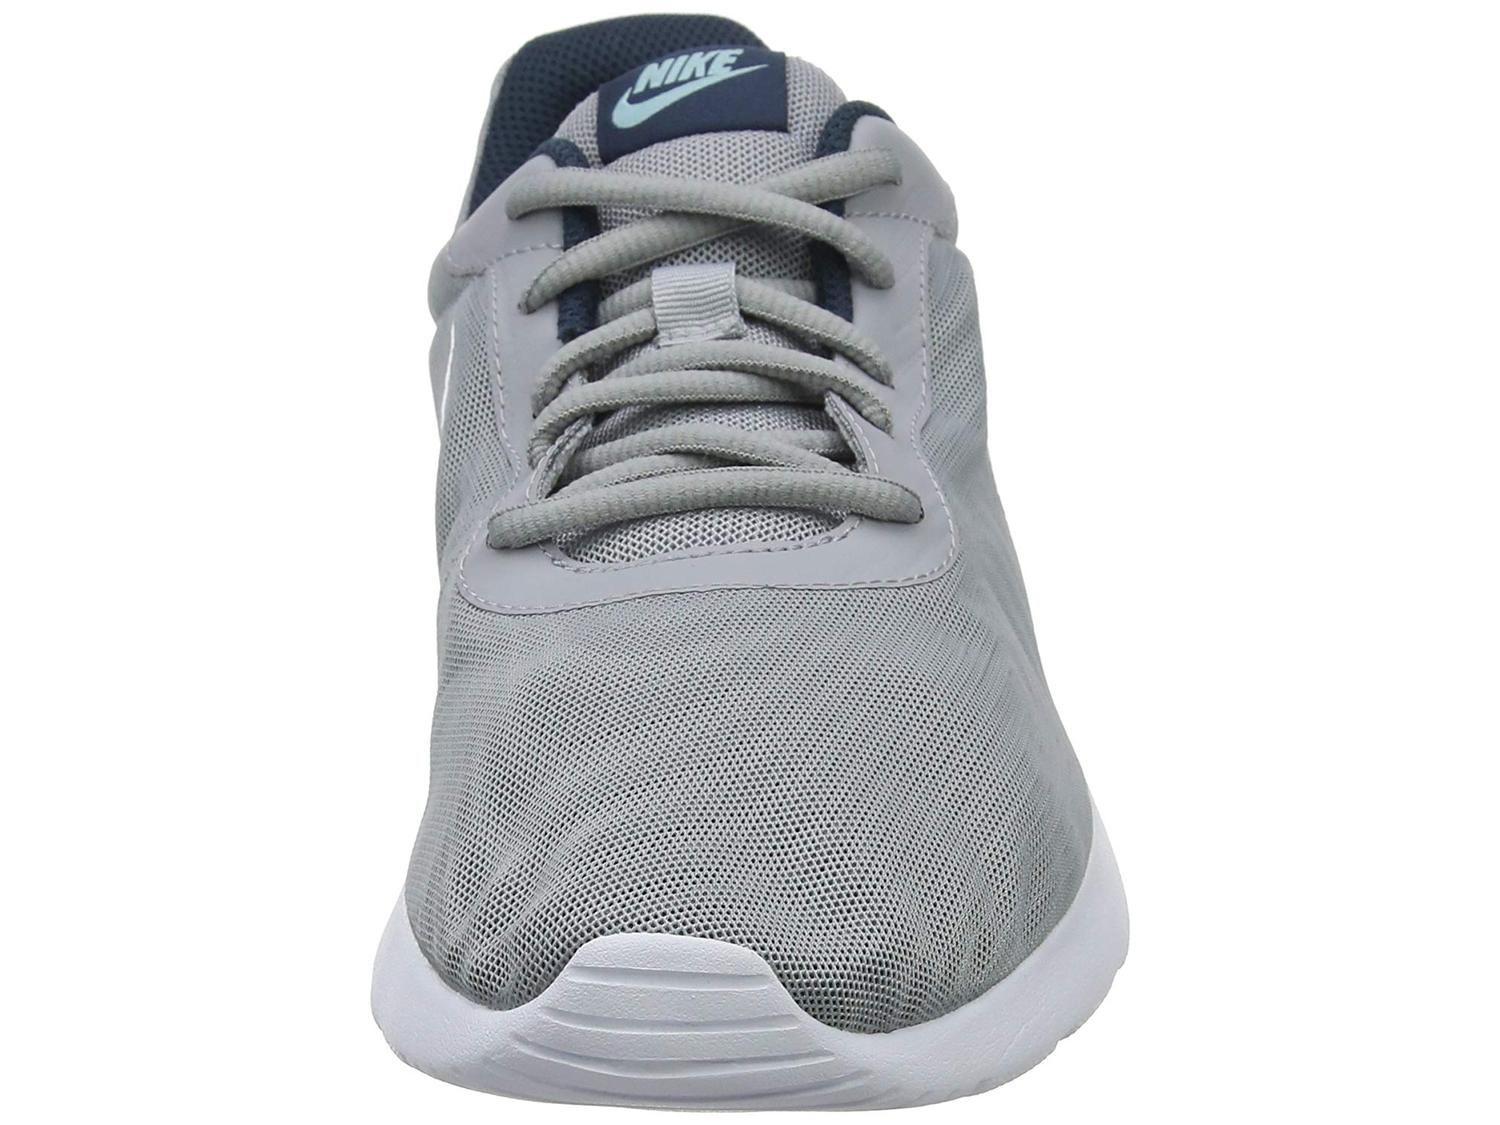 6b53061a4e221d Nike Mens 812654 Fabric Low Top Lace Up Running Sneaker